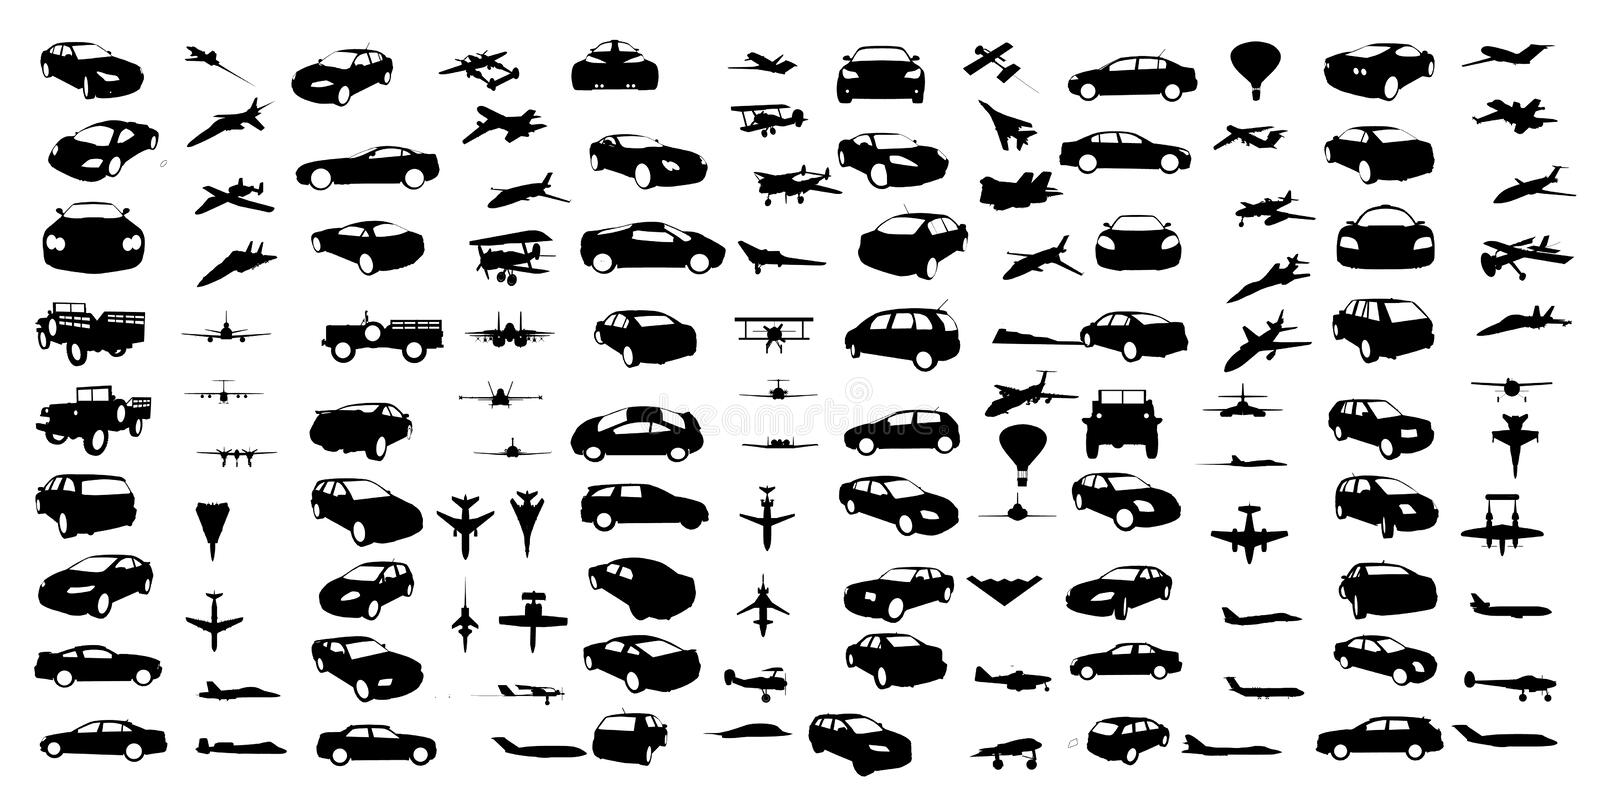 Cars and airplanes shapes stock illustration